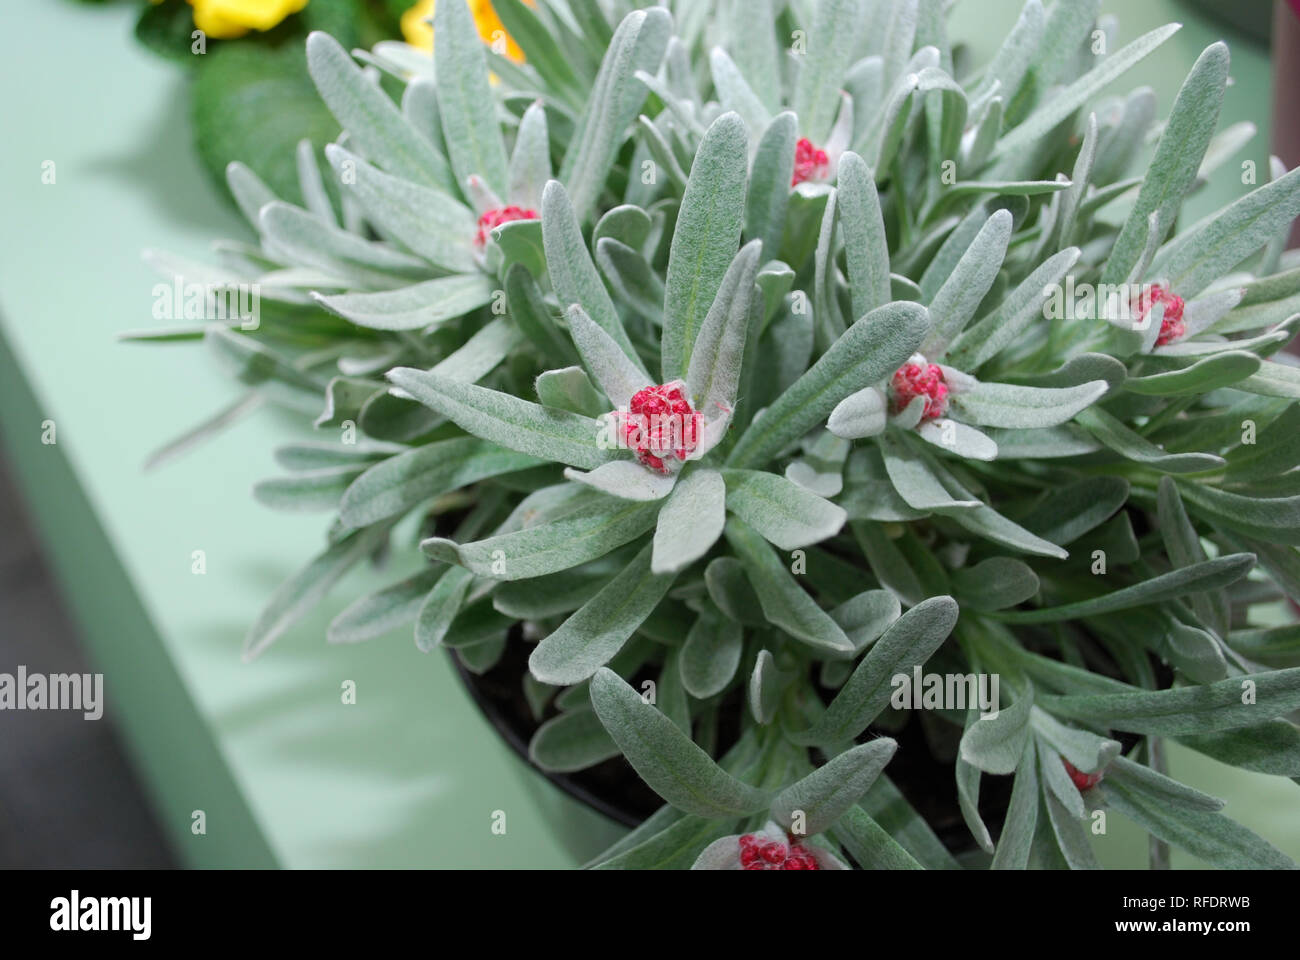 Rhododendron arboreum with silver leaves and red flower's buds. Springtime. - Stock Image